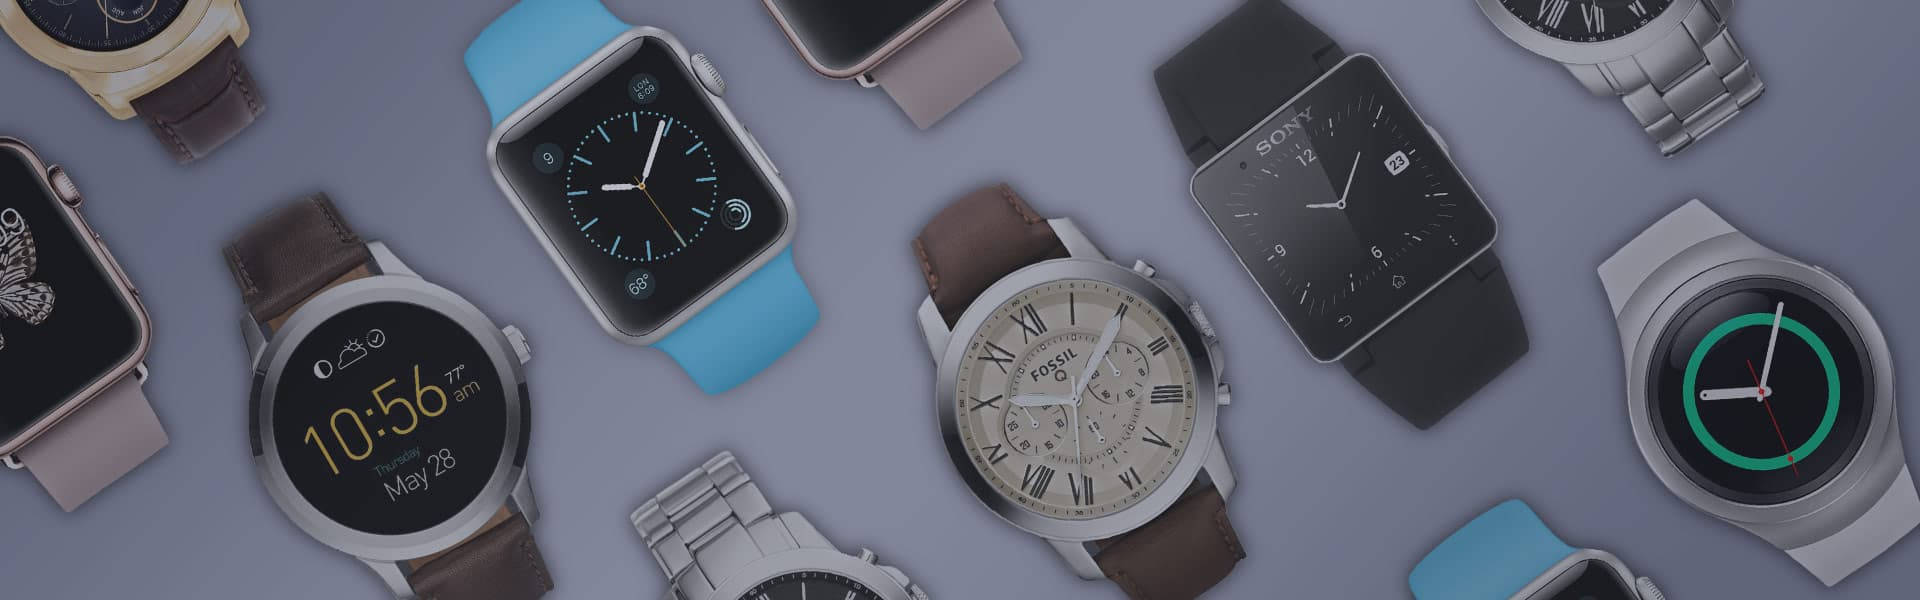 Best Smartwatch Under 200 USD 2019 – Buyer's Guide and Smartwatch Reviews